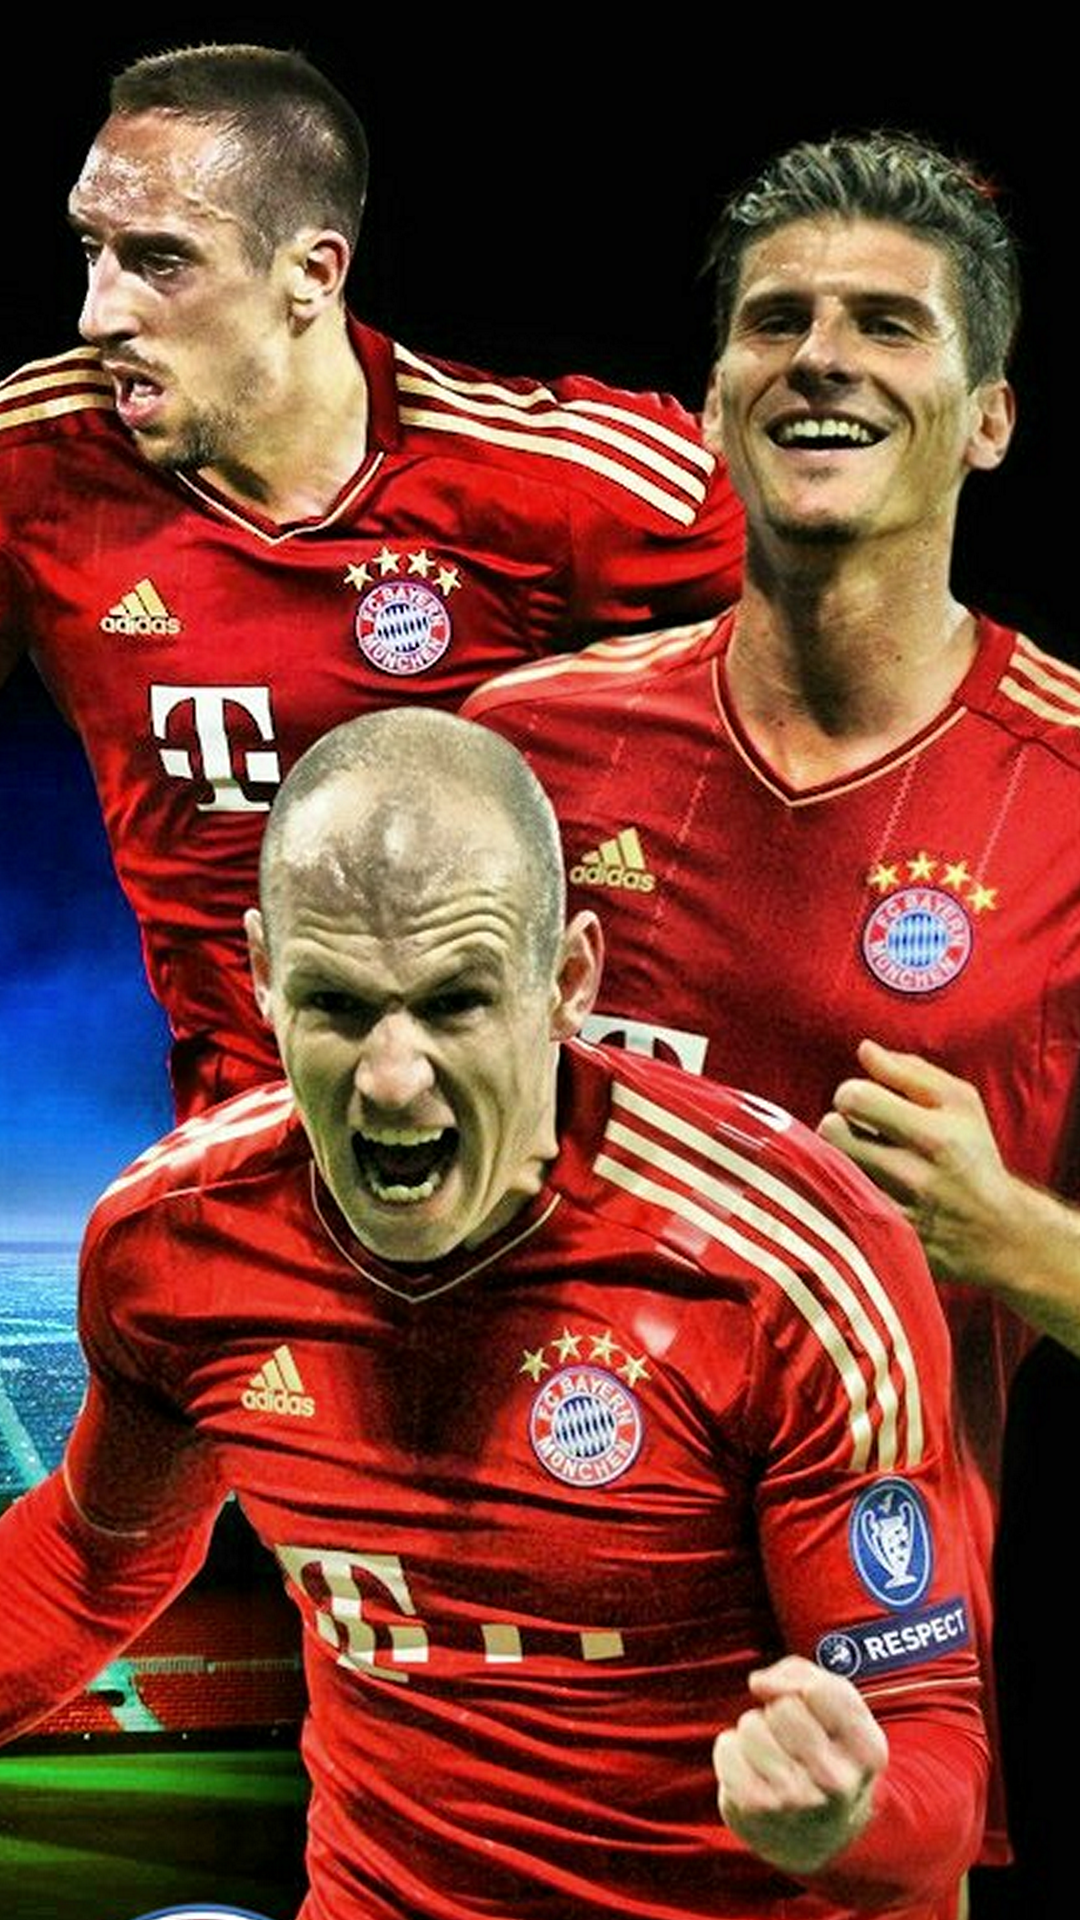 FC Bayern Munch Squad, fondos galaxy s4, fondos de pantalla galaxy s4, sfondi samsung galaxy s4, hintergrund, ????, 1080x1920 pixels, portraid mode background for smartphone